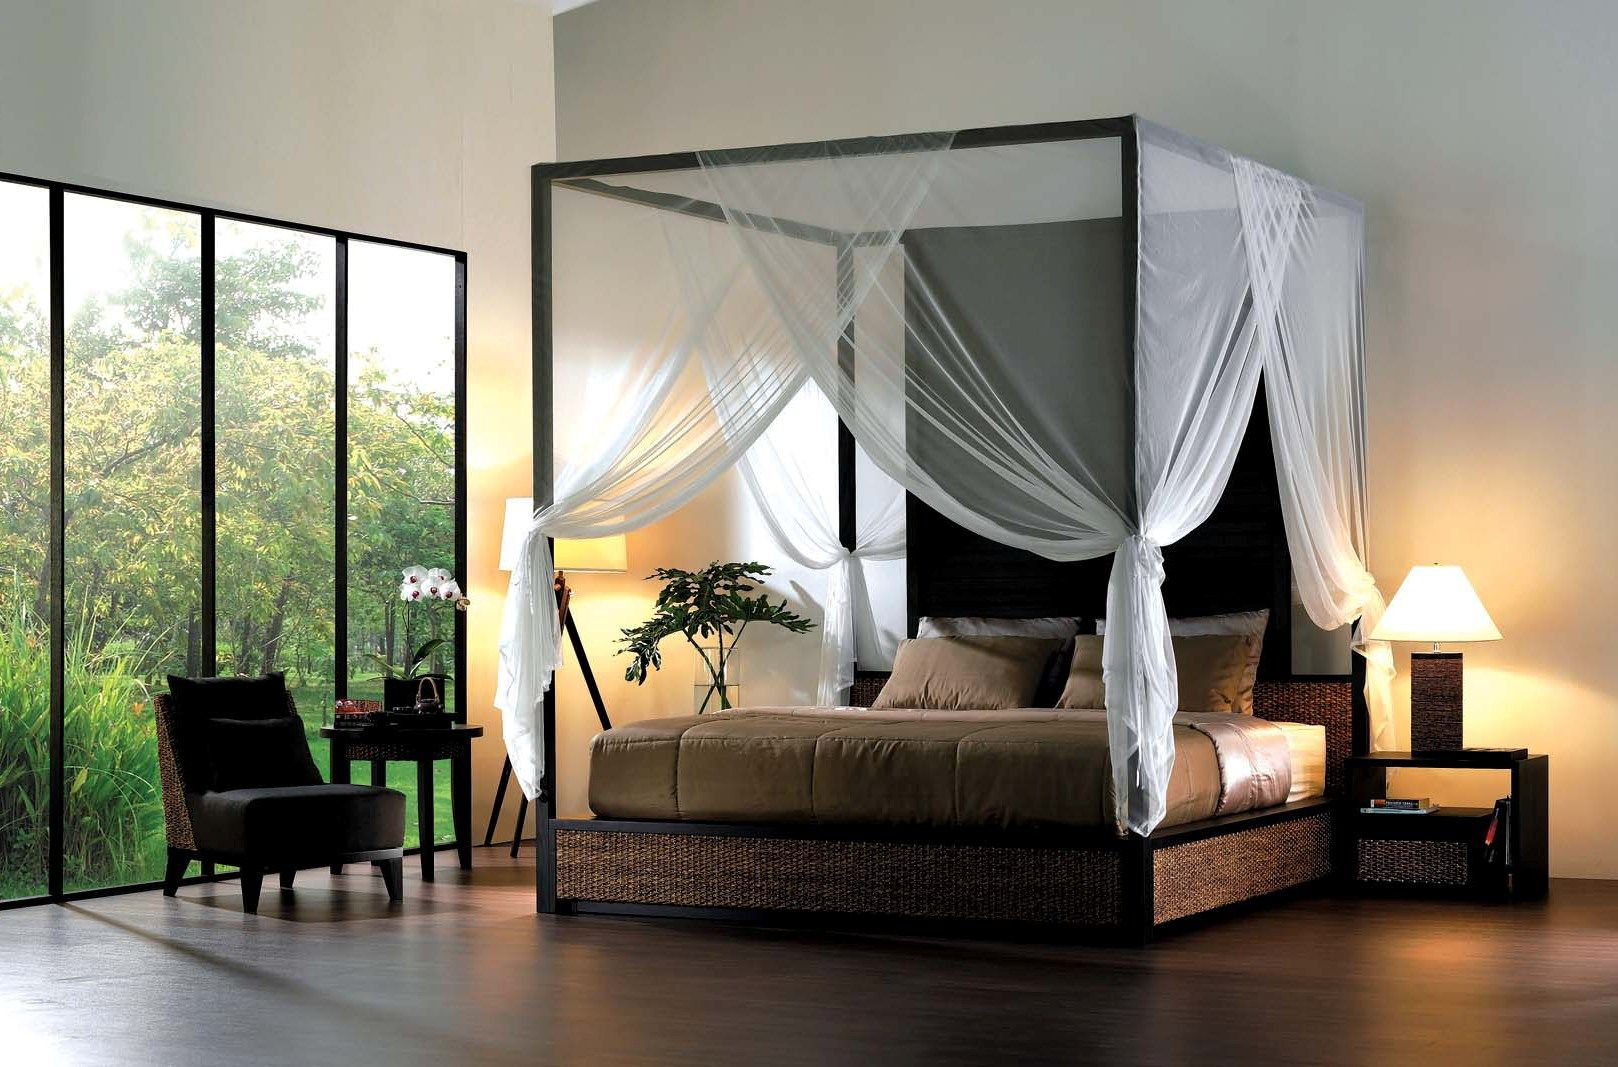 Enhance Your Fours Poster Bed With Canopy Bed Curtains Https